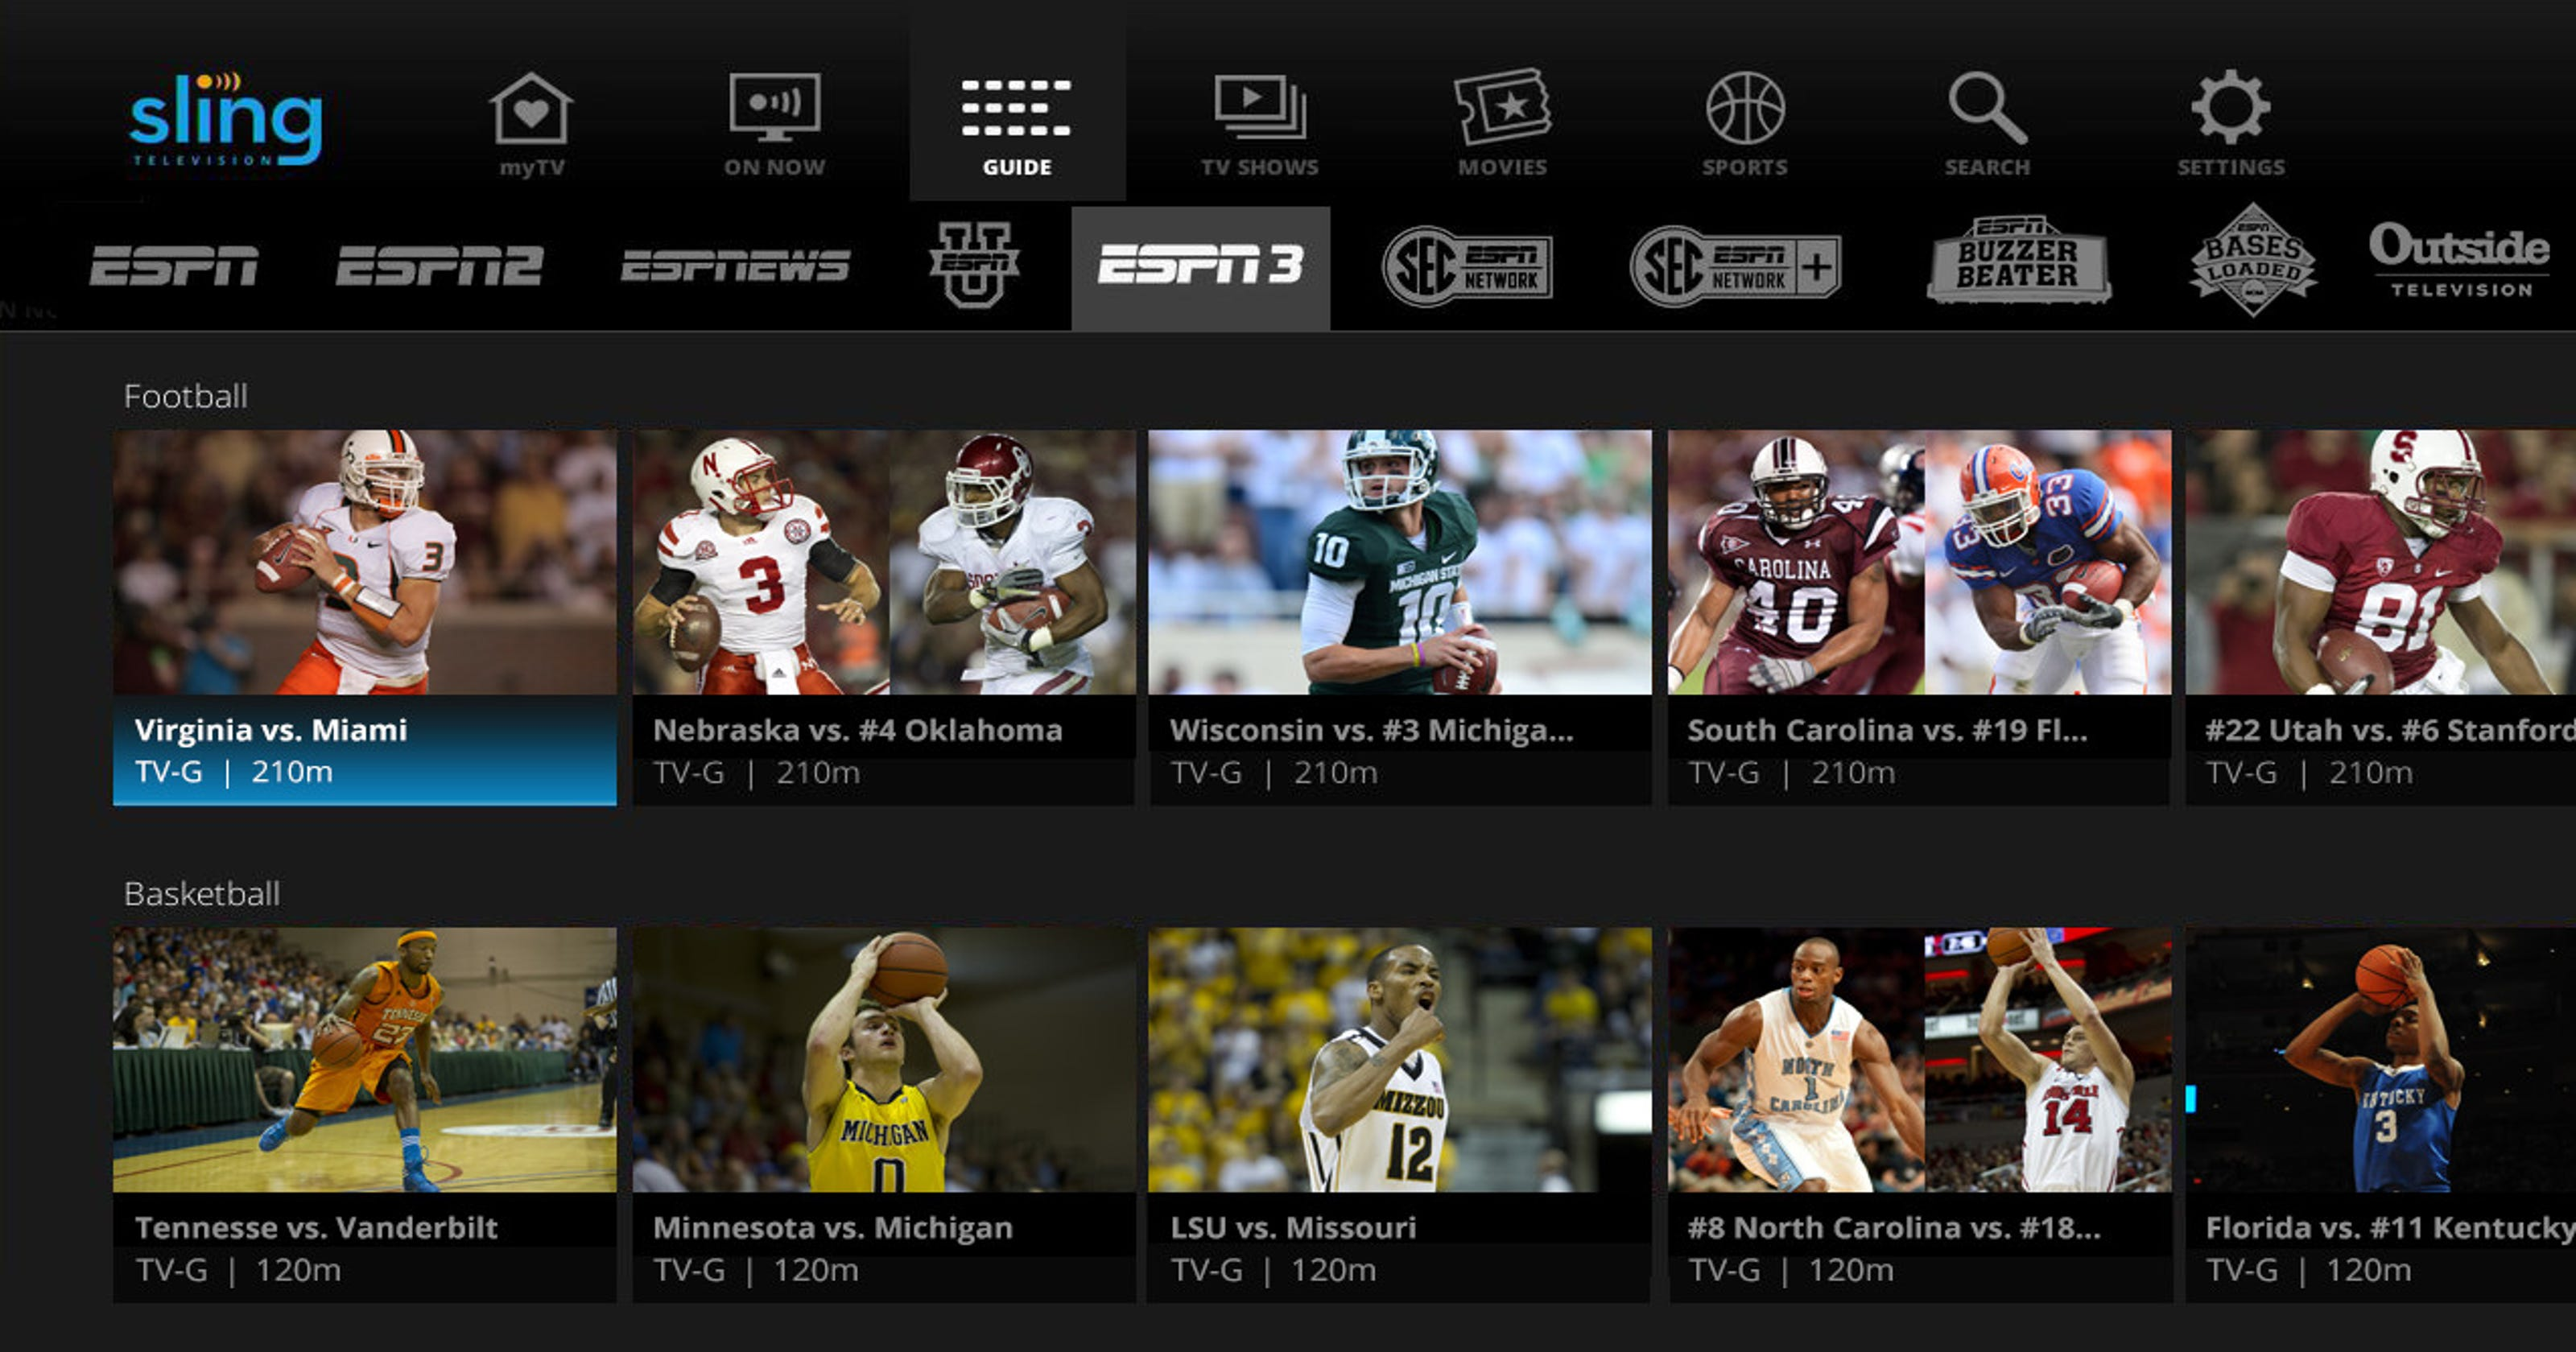 dish network tv guide for today